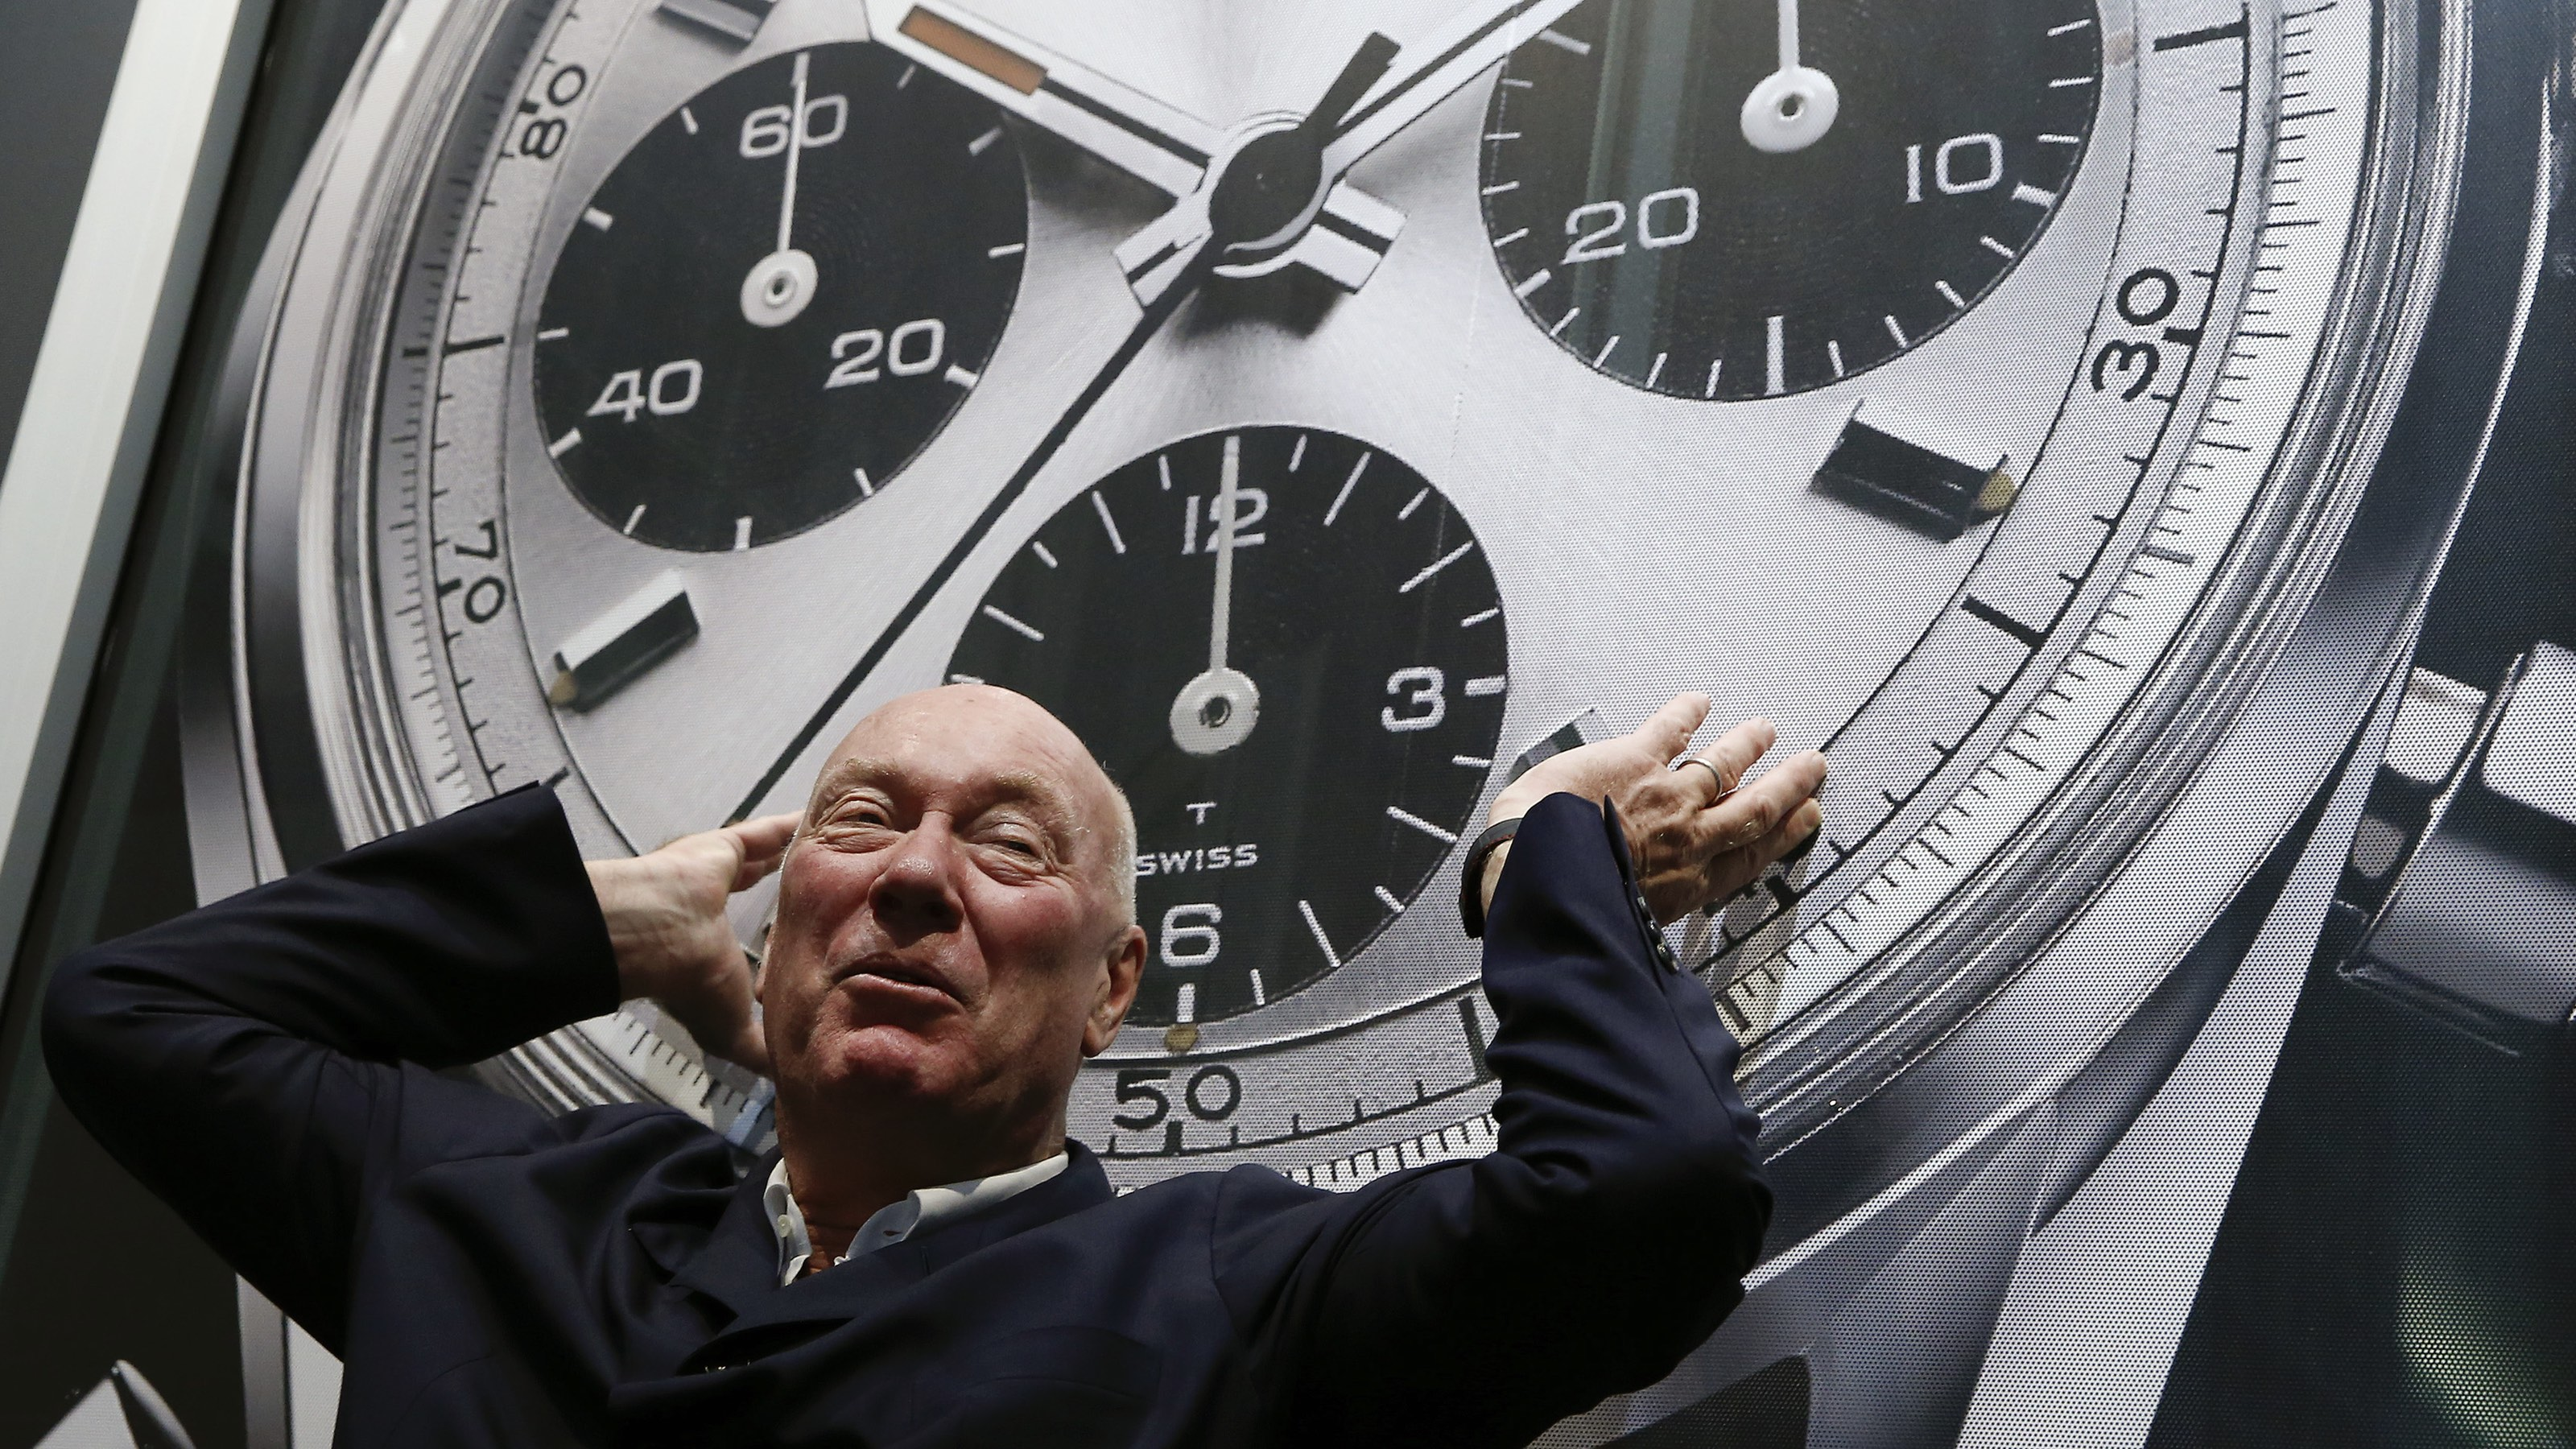 Jean-Claude Biver, head of French luxury goods group LVMH's watch business and interim CEO of the group's biggest watch brand, TAG Heuer, poses in front of an advertising poster before a news conference in the western Swiss town La Chaux-de-Fonds December 16, 2014. REUTERS/Arnd Wiegmann (SWITZERLAND - Tags: BUSINESS)